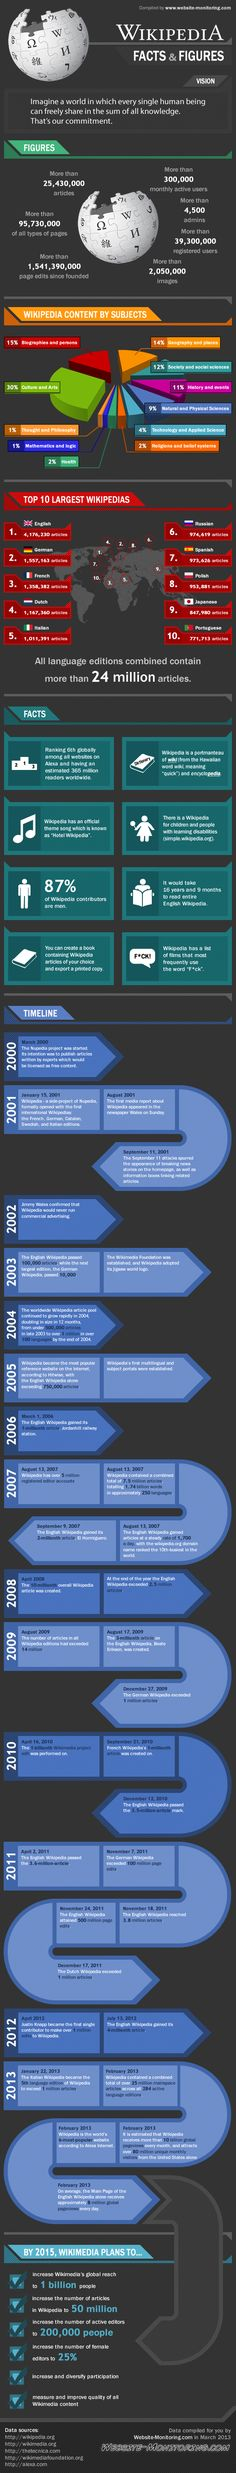 This is gigantic infographic about Wikipedia, the oft forgotten giant of the social/UGC/crowdsourced (pick one) internet.